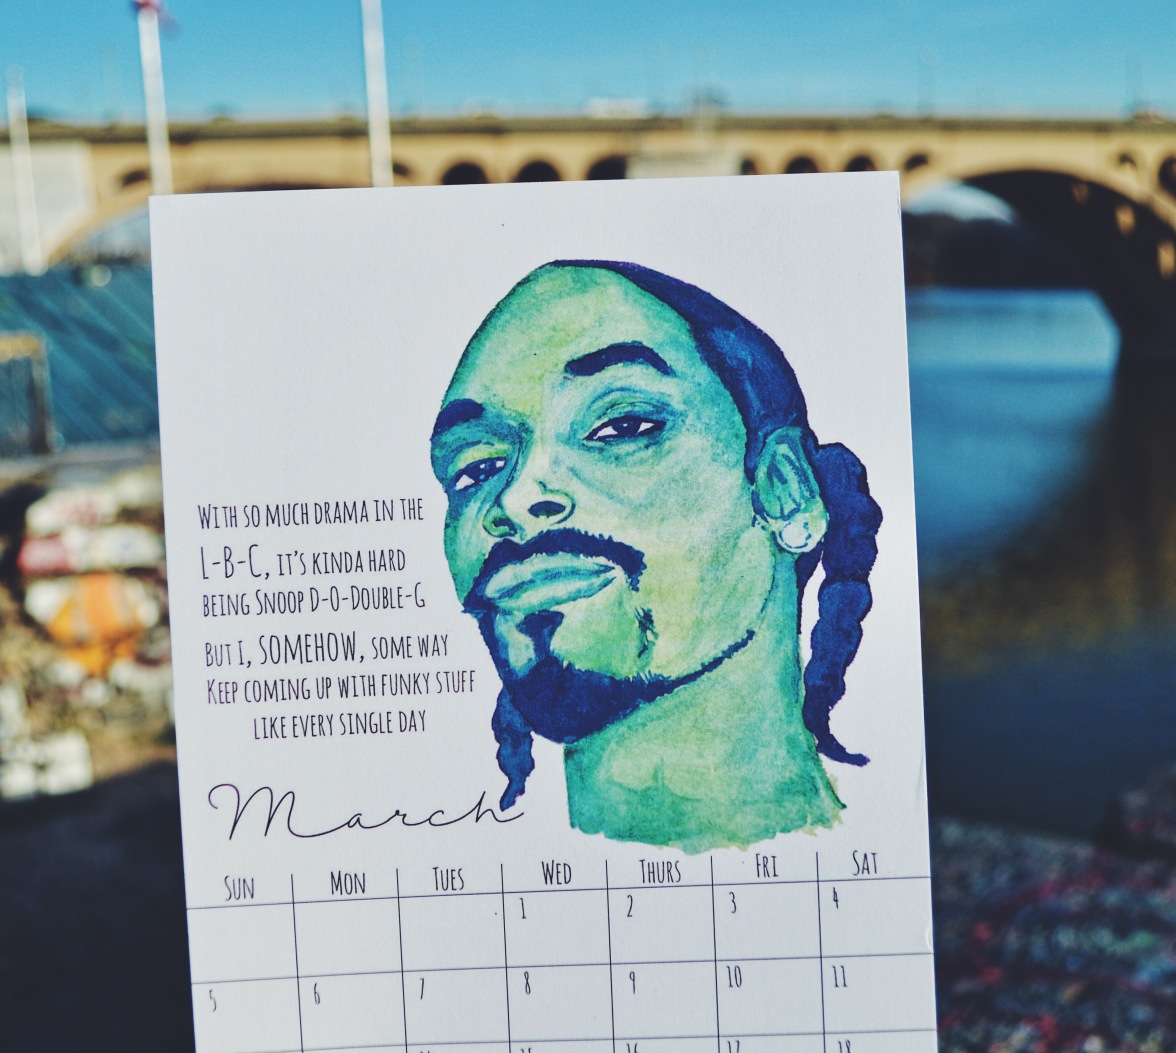 March: Snoop Dogg